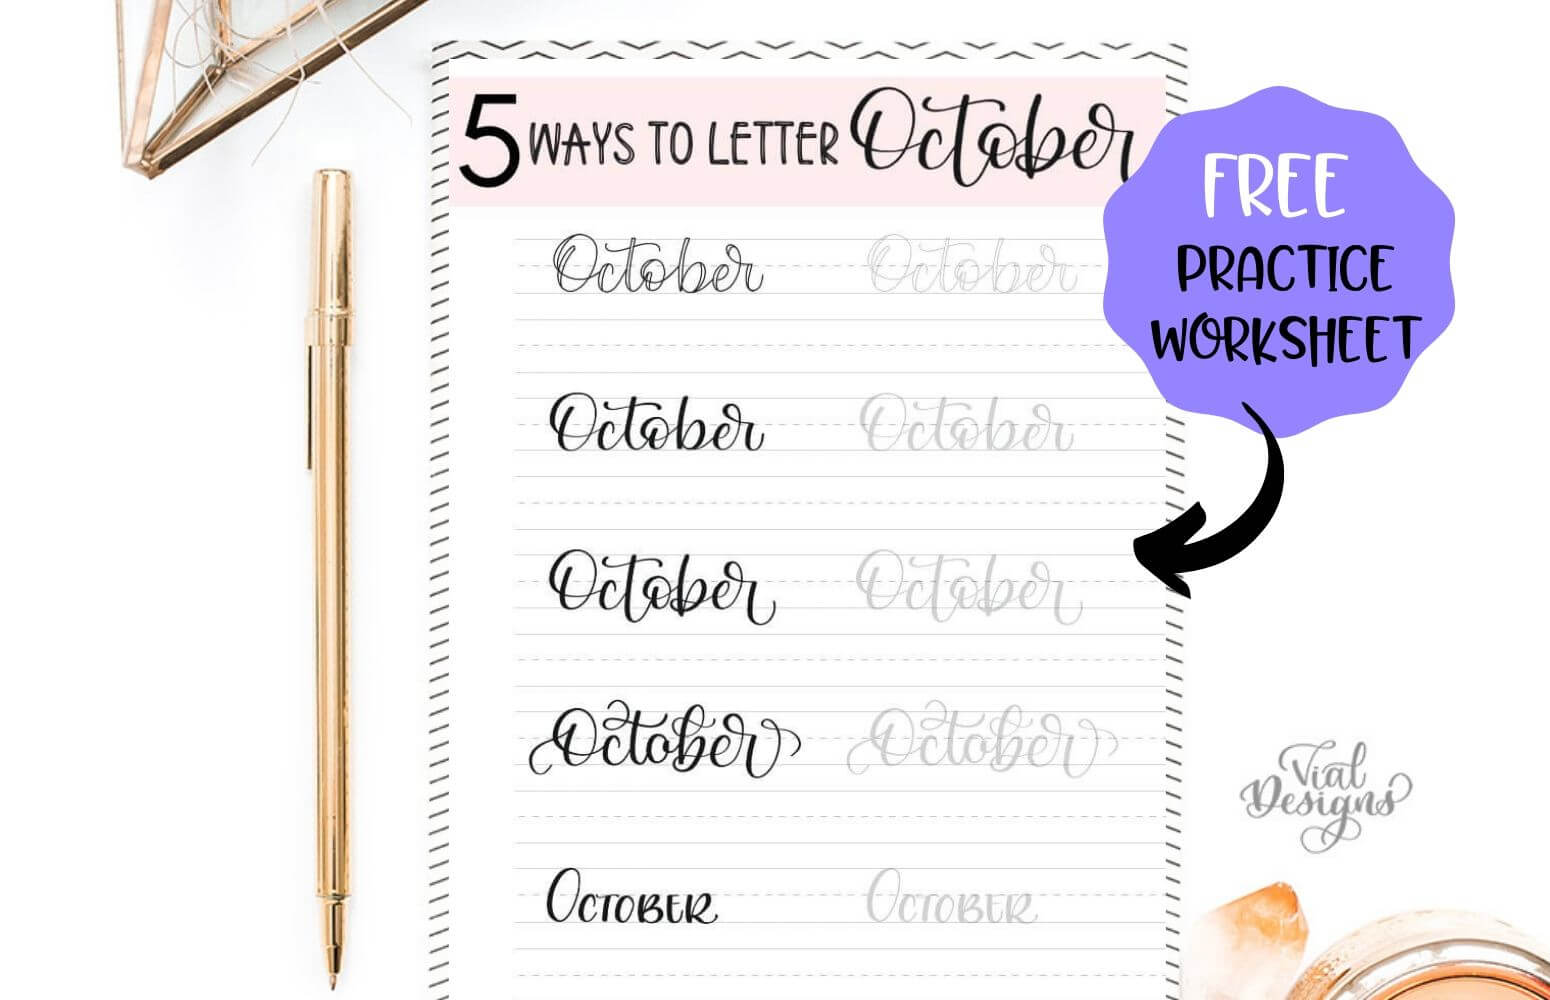 Learn 5 Ways To Letter October Plus A Free Calligraphy